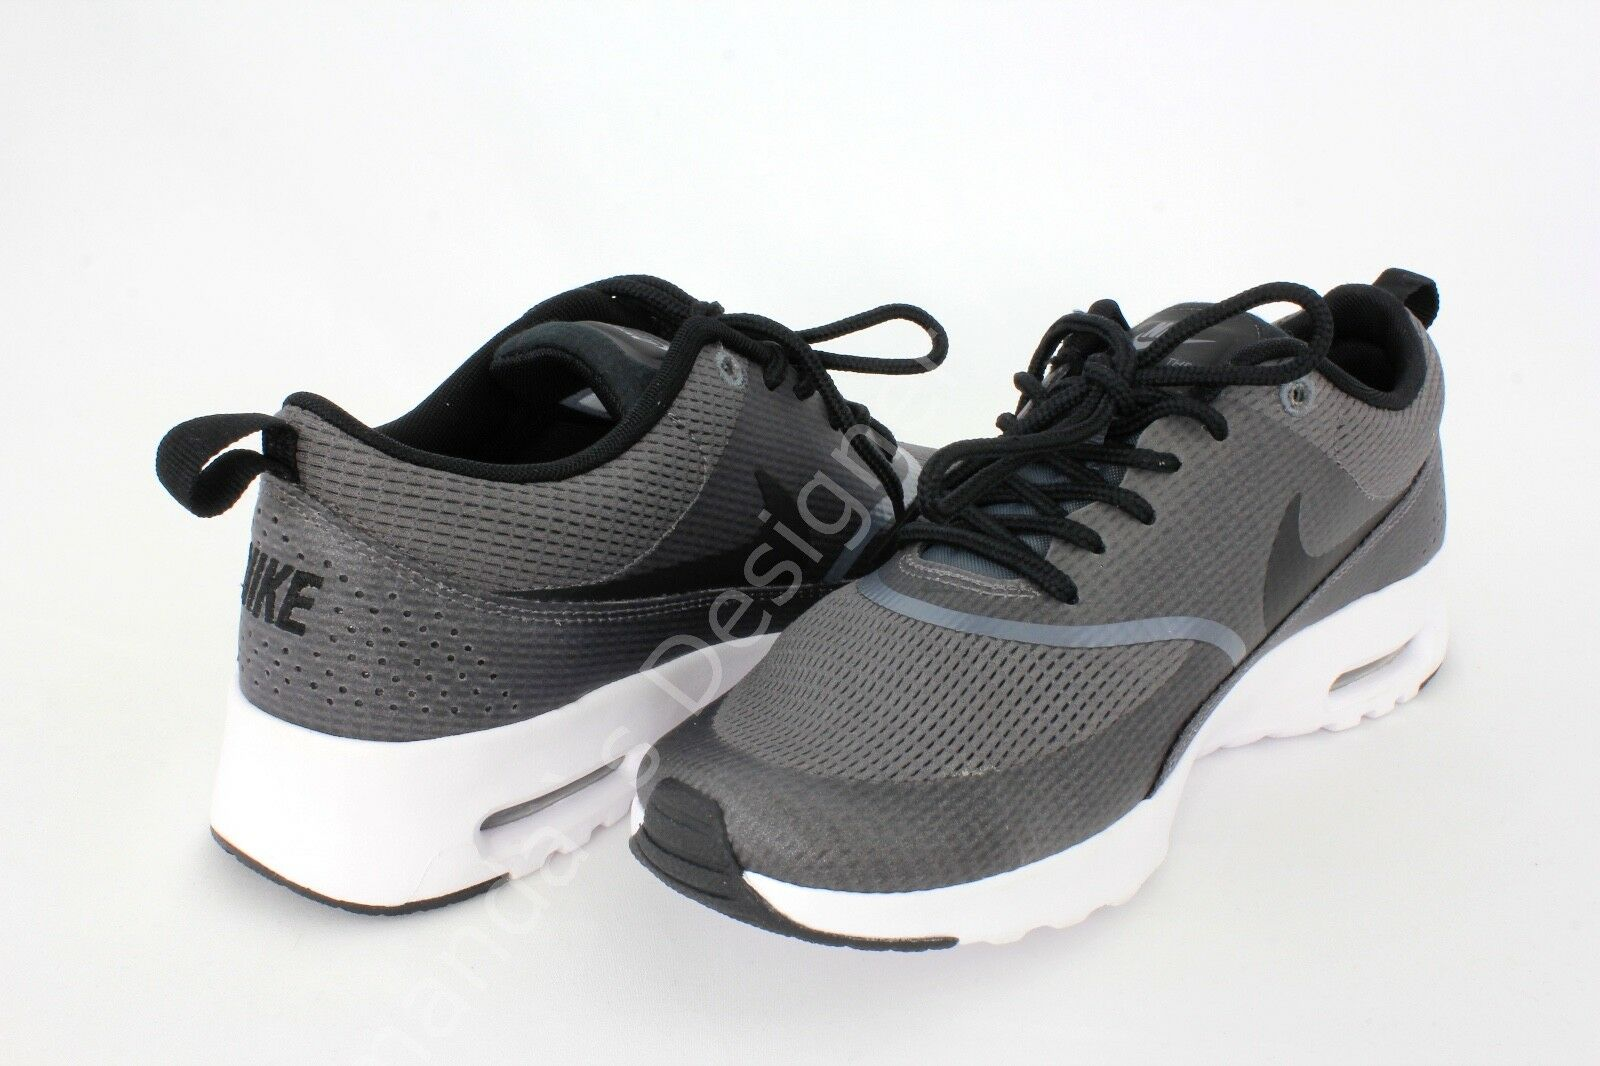 low priced df278 585de ... Nike Air Max Thea Txt Womens shoes Dark Dark Dark Grey Black White Size  8 9b4ce9